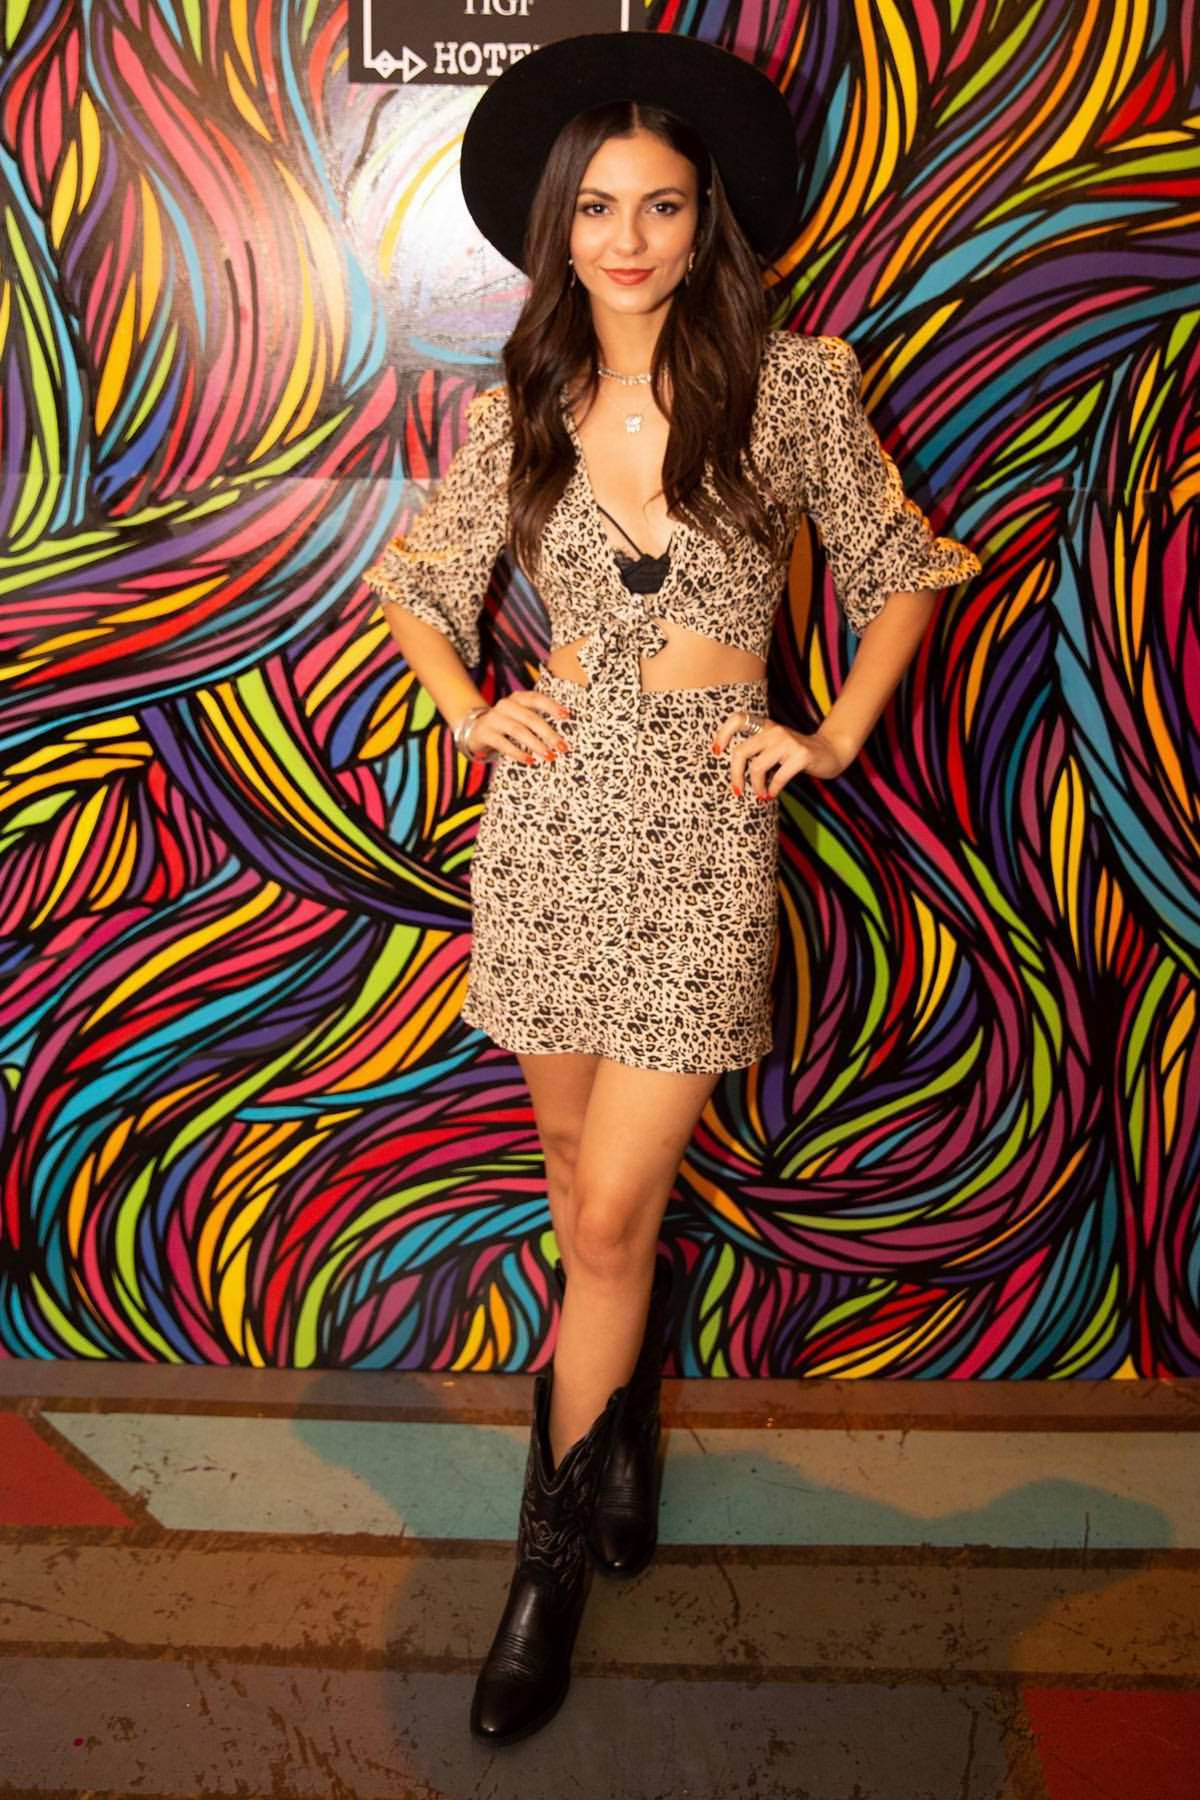 Victoria Justice attends the Bed Head Festival Pop-Up at the Freehand Hotel in Chicago, Illinois